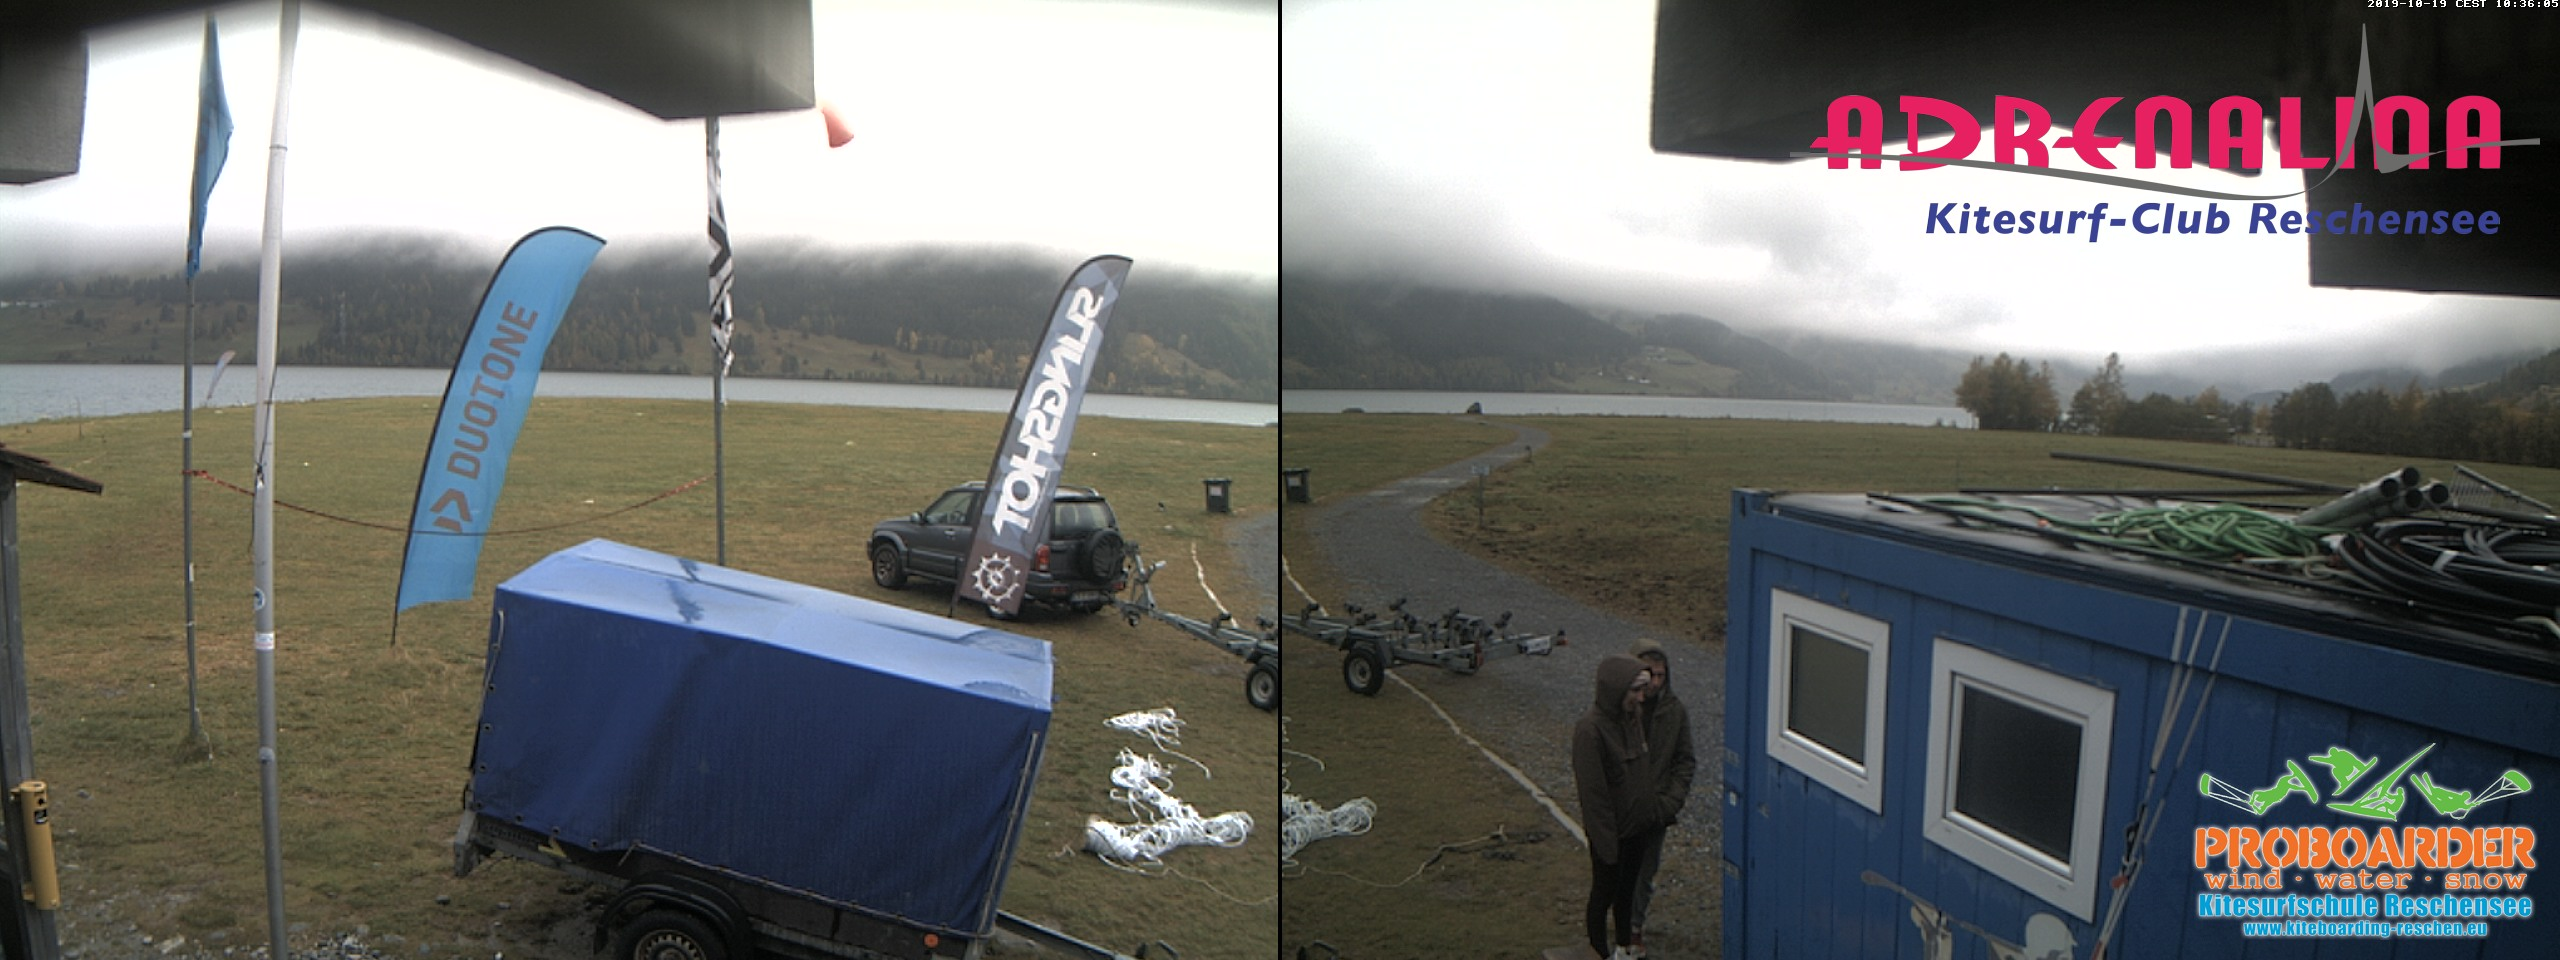 Webcam Reschenpass vom Adrenalina Kitesurf Club